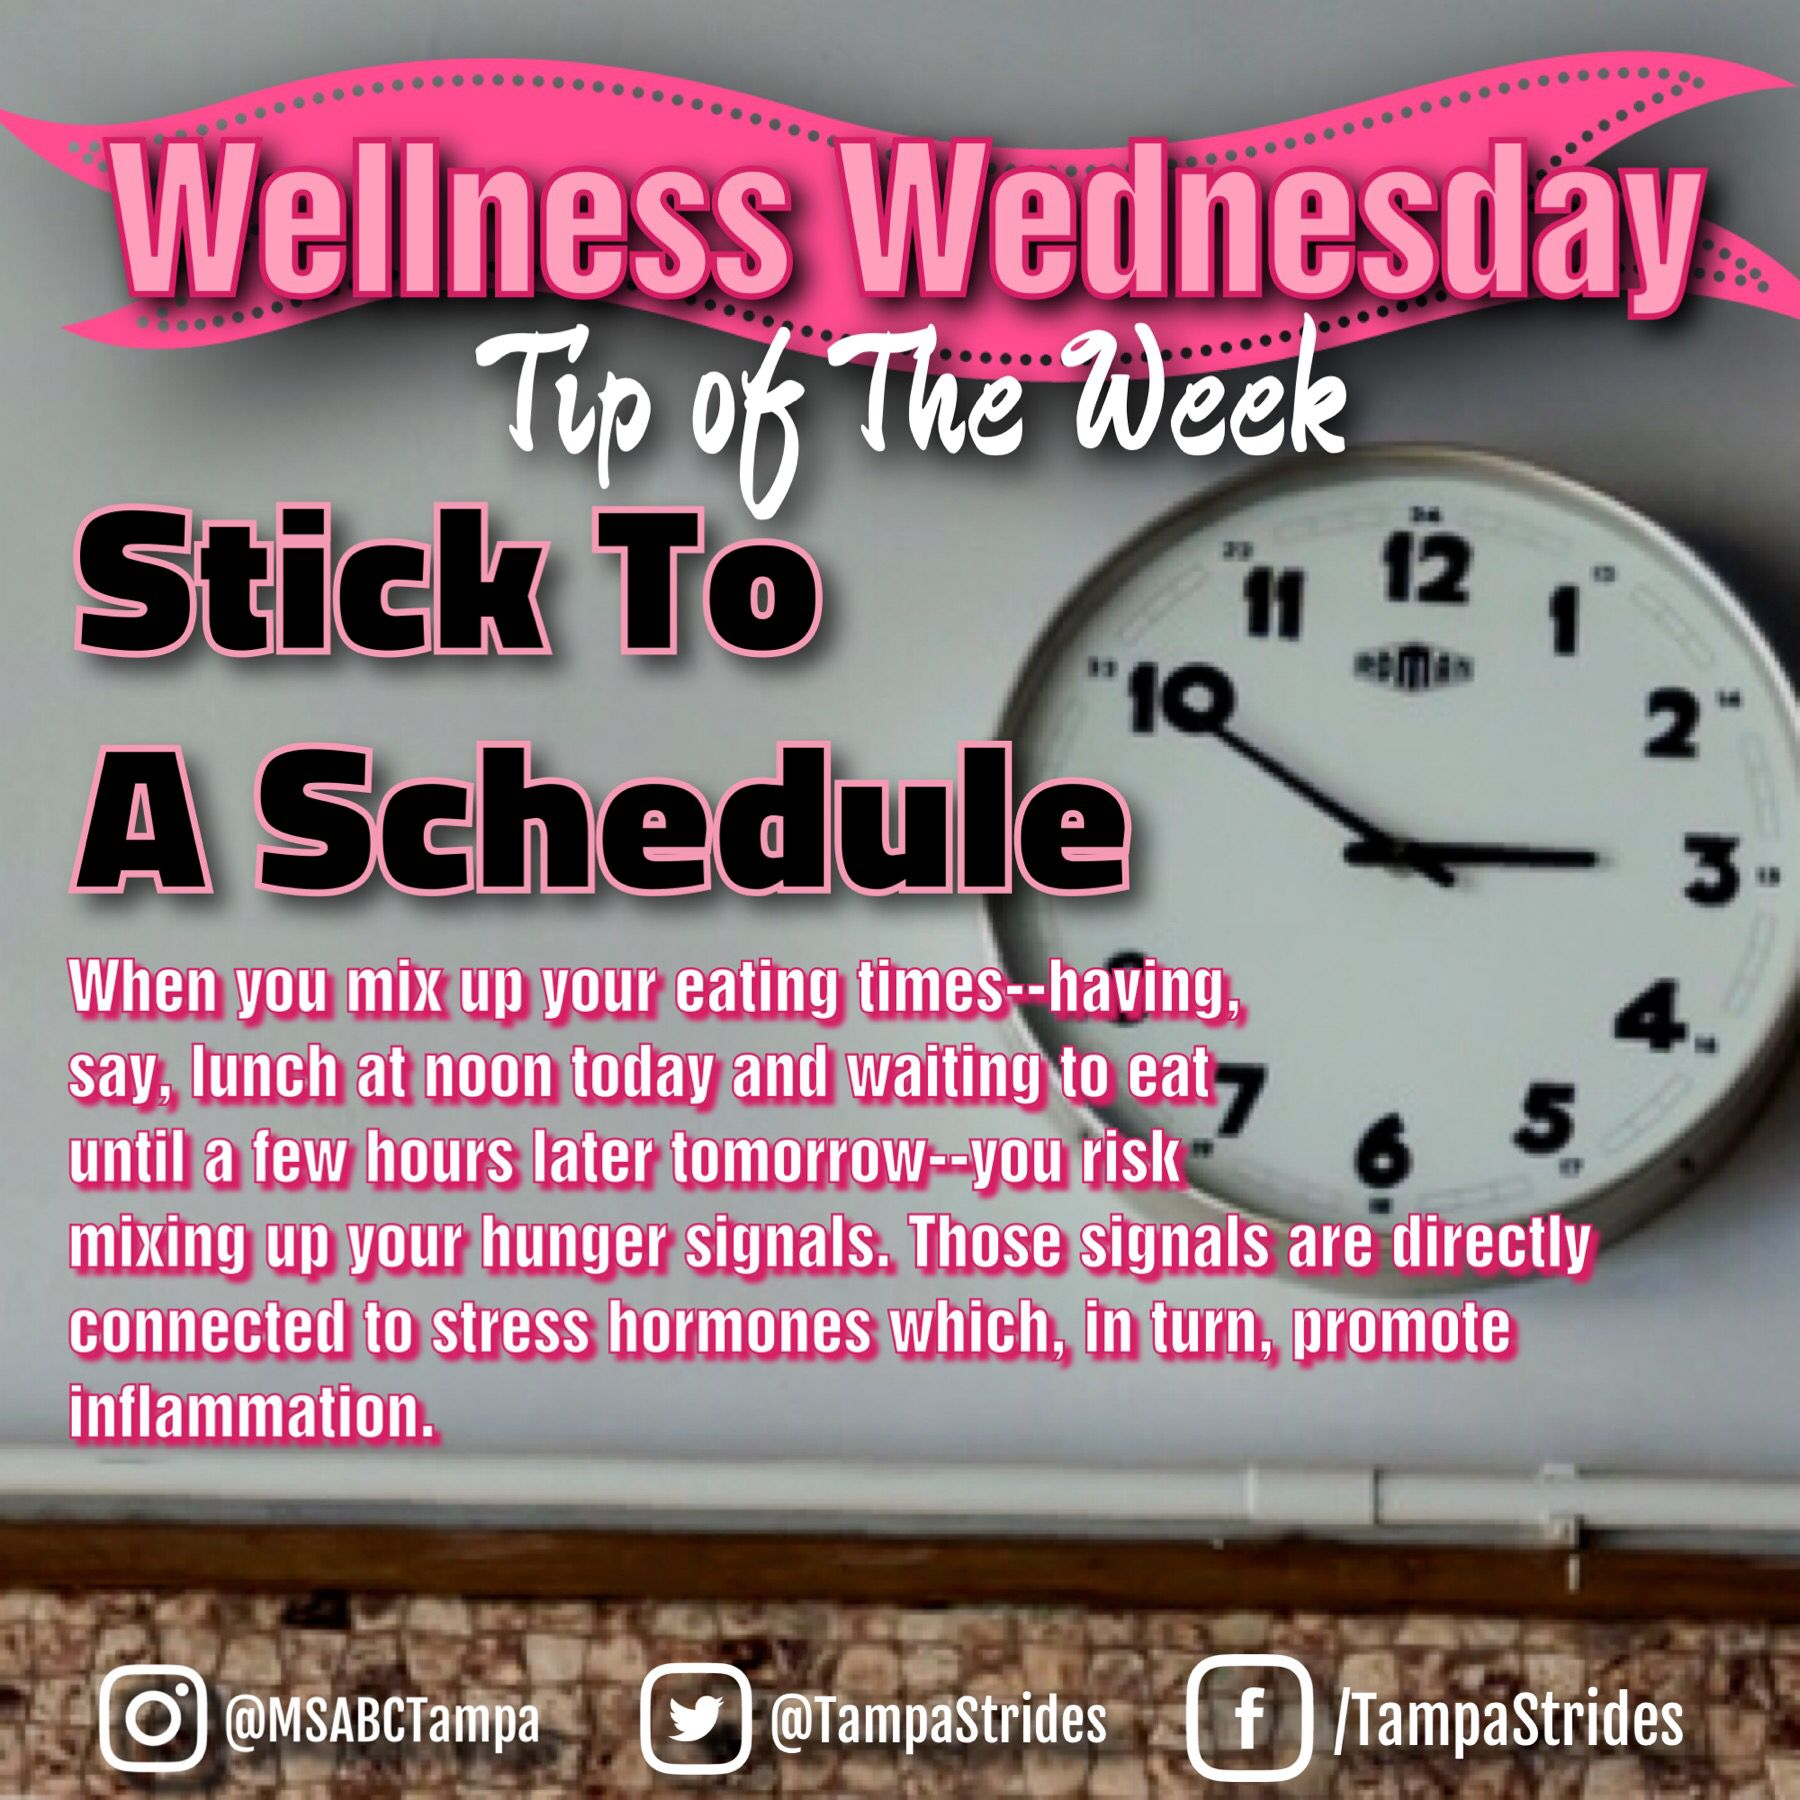 Idea By TampaStrides On Wellness Wednesday